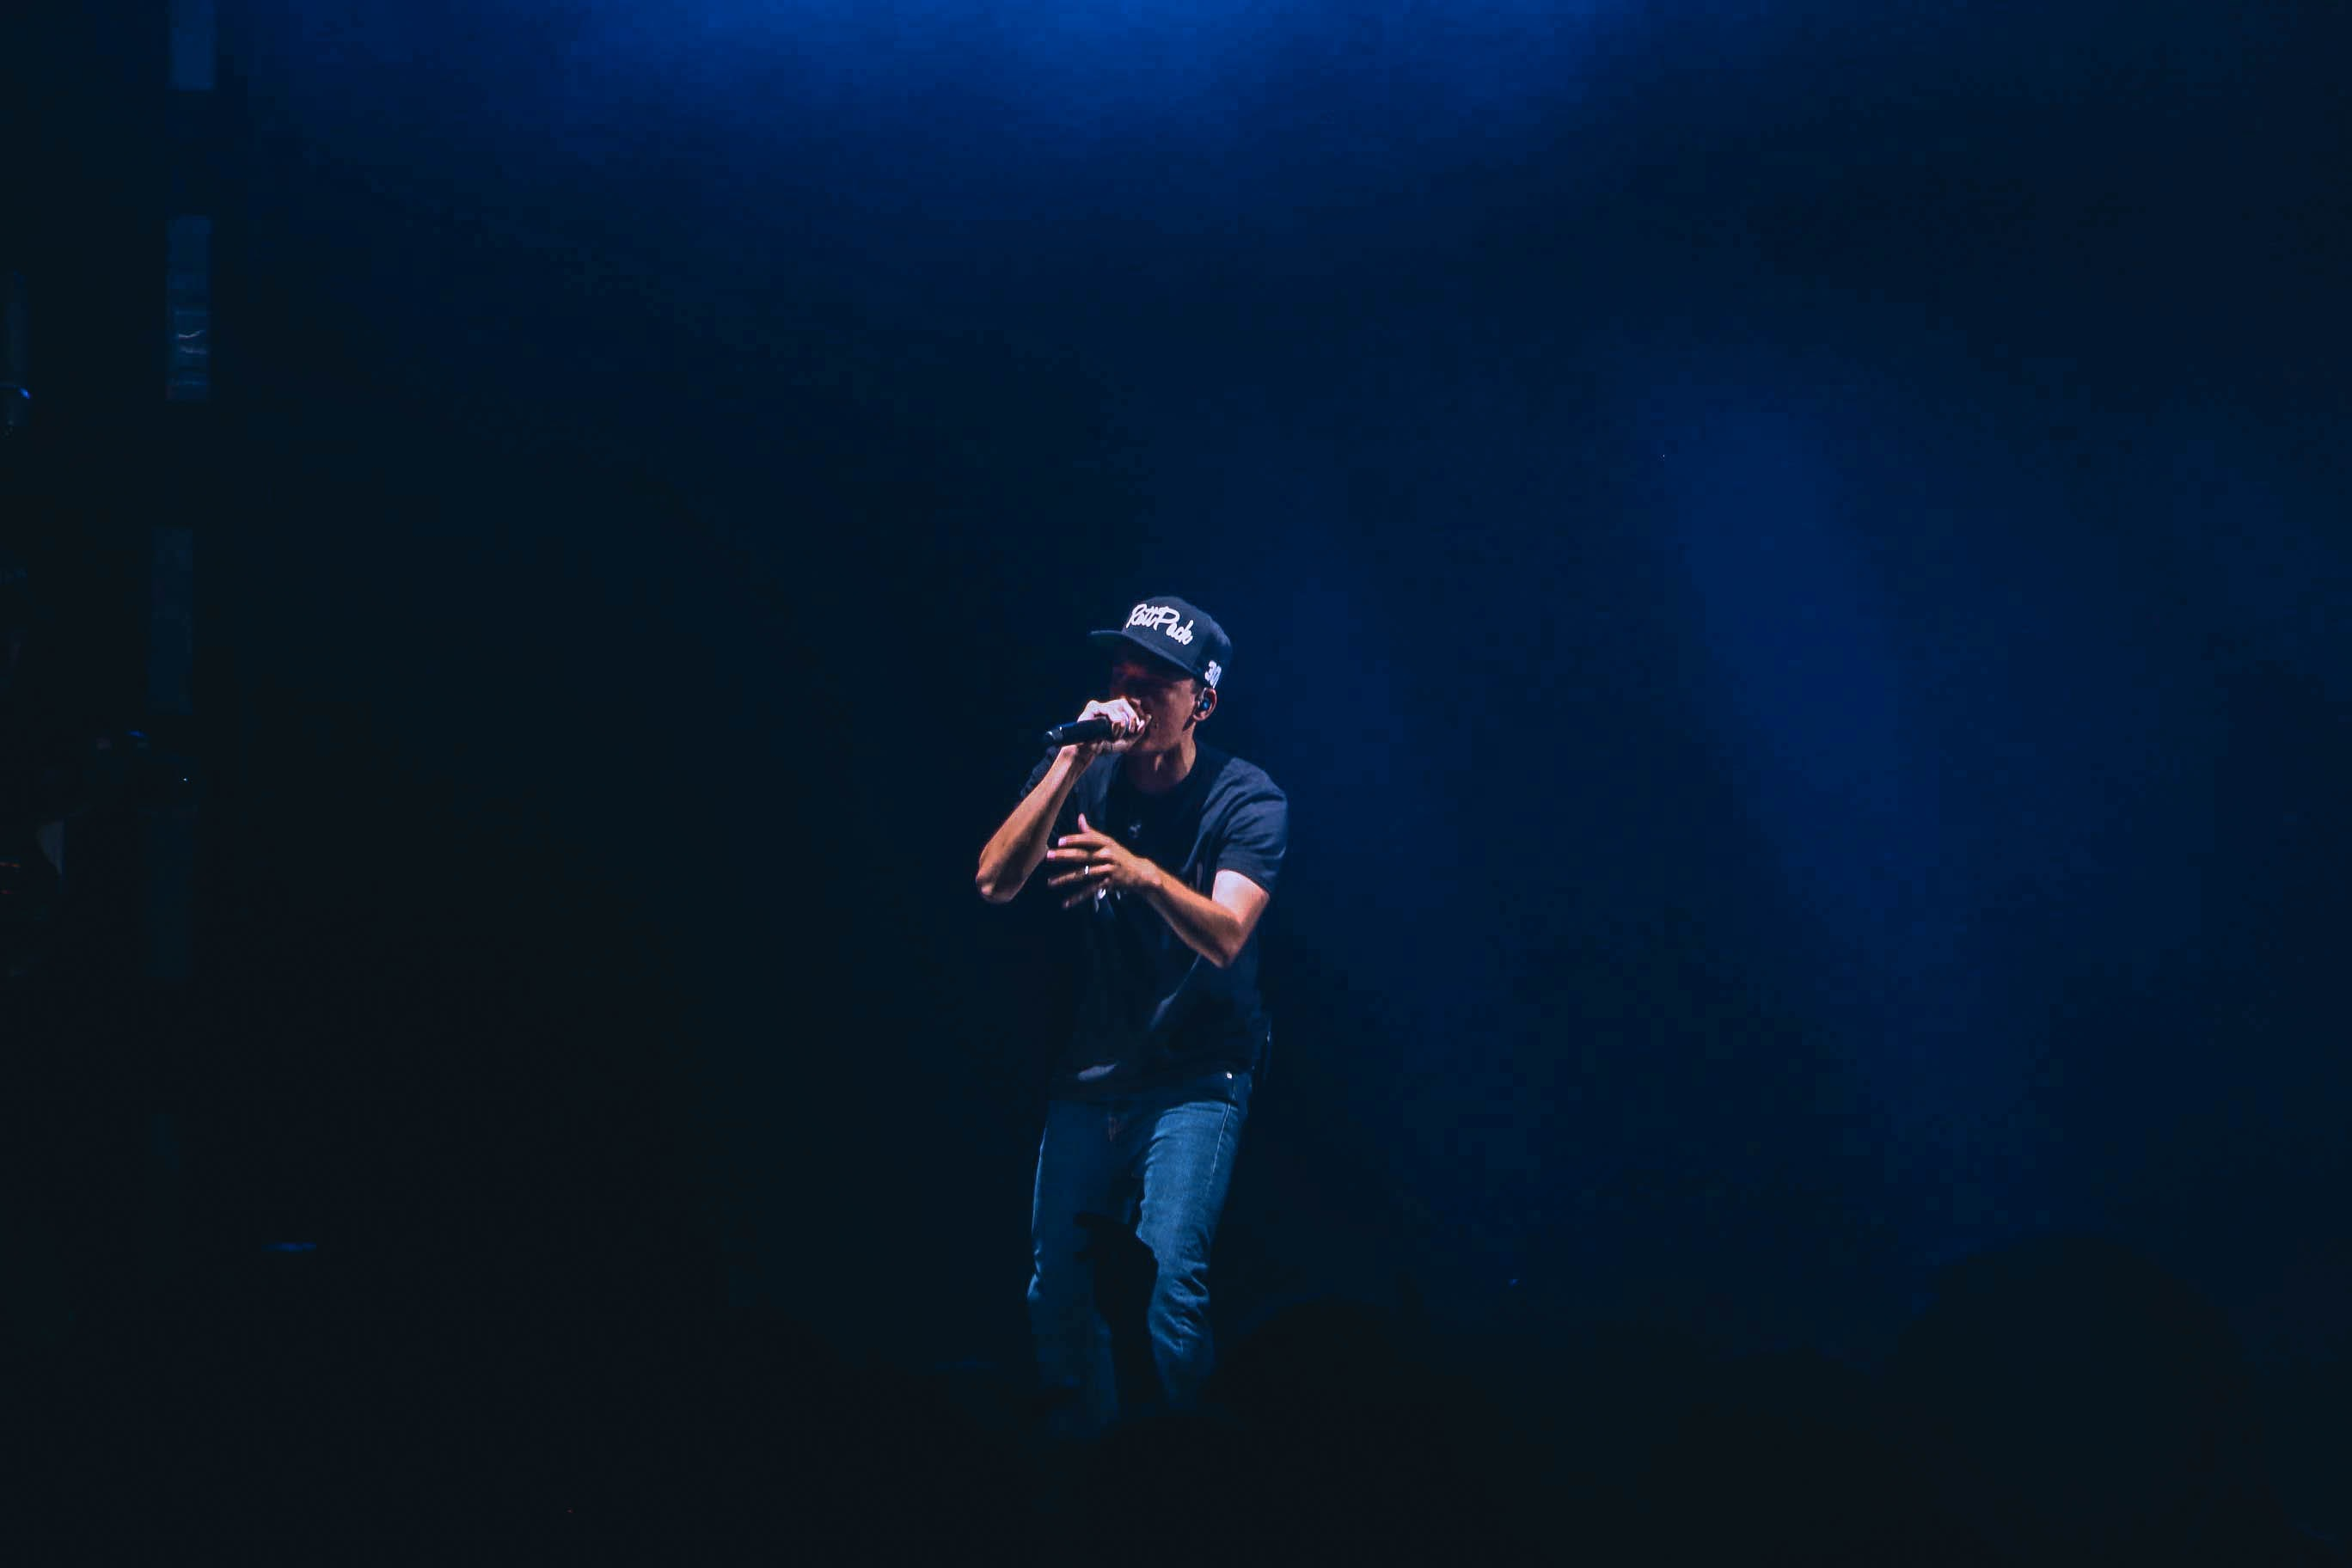 A rapper performing on stage wearing a cap and holding a microphone under blue spotlight